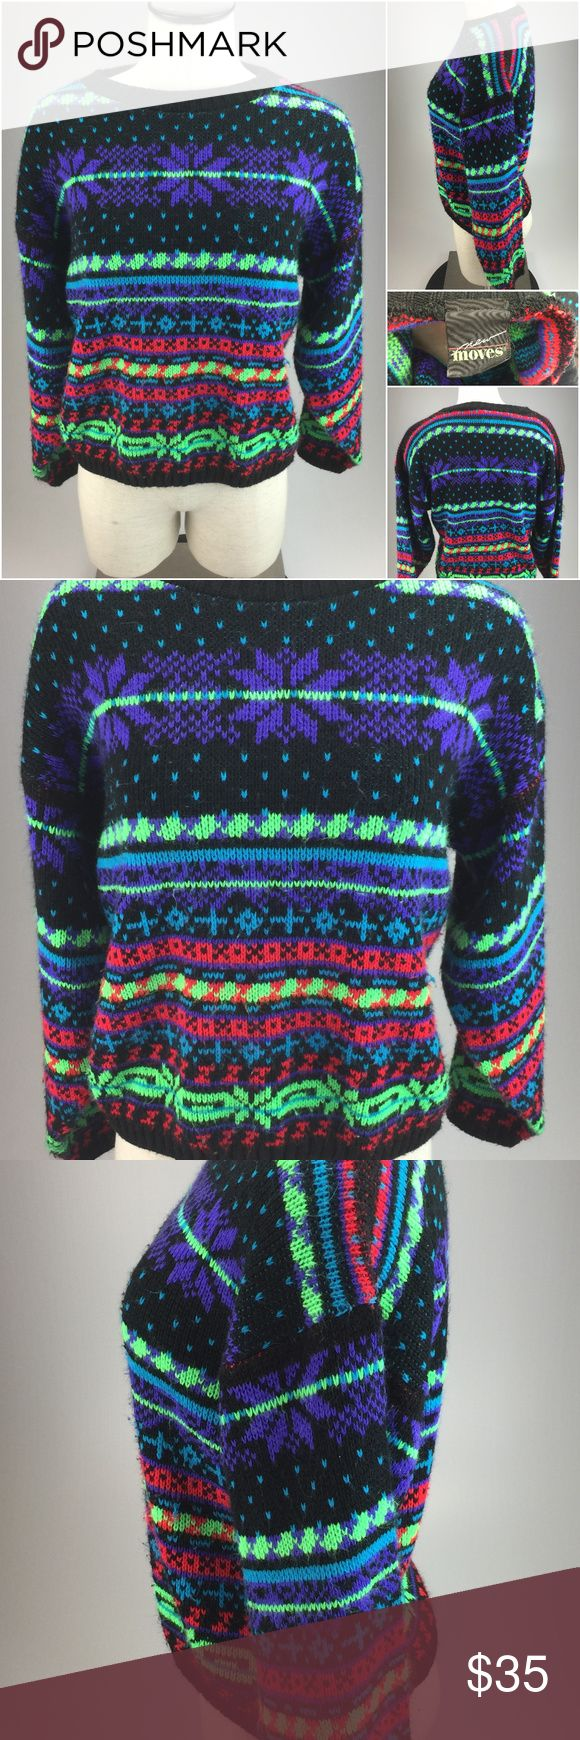 Vintage 1980s New Moves Neon winter sweater G1-4-2 Description: Vintage 1980's New Moves Neon colored Winter Snowflake sweater Brand: New Moves Style: crew neck Sleeve: long Size: tagged as a medium but please view measurements below Color: Black and multi-color neon Condition: Pre-owned - nice  The measurements are as follows laying flat:  1. Back shoulder seam to seam - 21 inches  2. Arms - 18 inches  3. Under arm to Under arm - 20 inches  4. Top to bottom - 20.5 inches New Moves Sweaters…